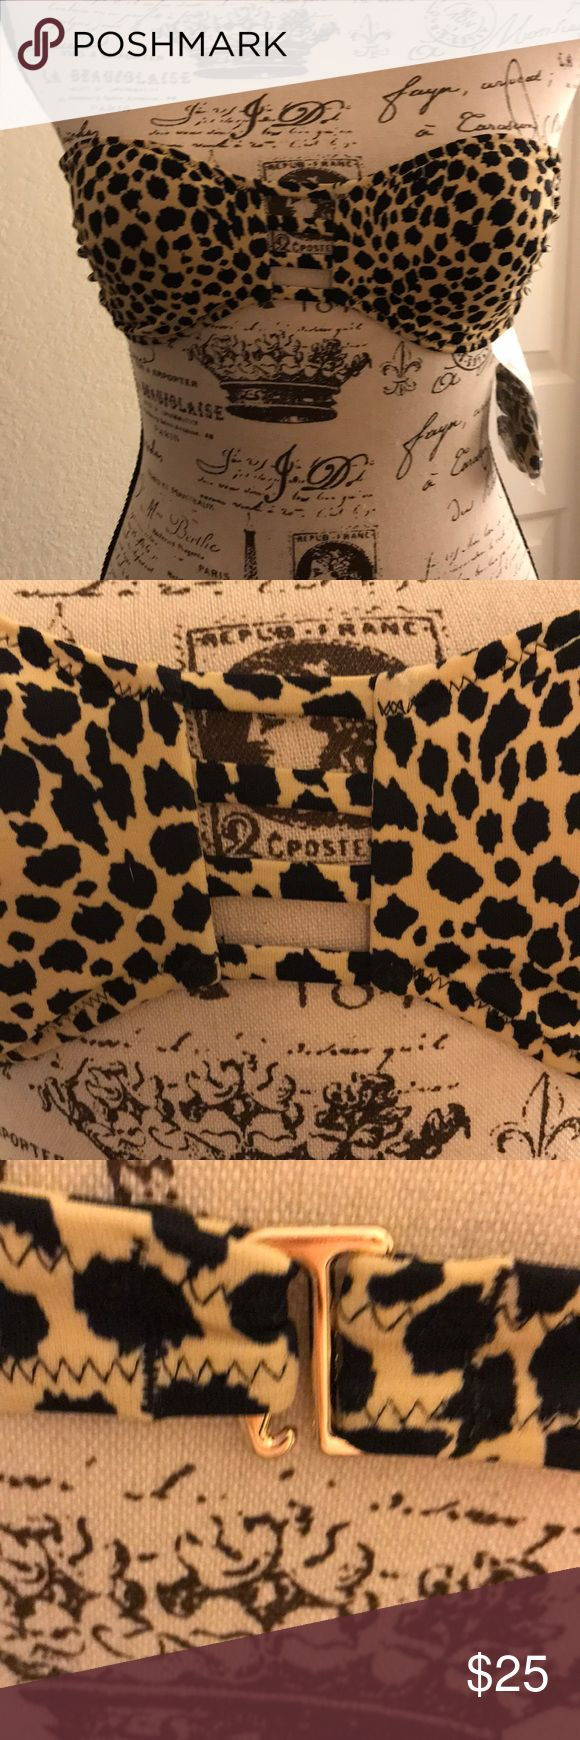 🌸VICTORIA SECRETS SWIM BIKINI TOP Beautiful leopard print bandeau style bikini top with adjustable straps if you choose. Signature gold clasp at back And three strap cut out in center front. Easily paired with so many bottoms, check out the black crochet I have. Victoria's Secret Swim Bikinis